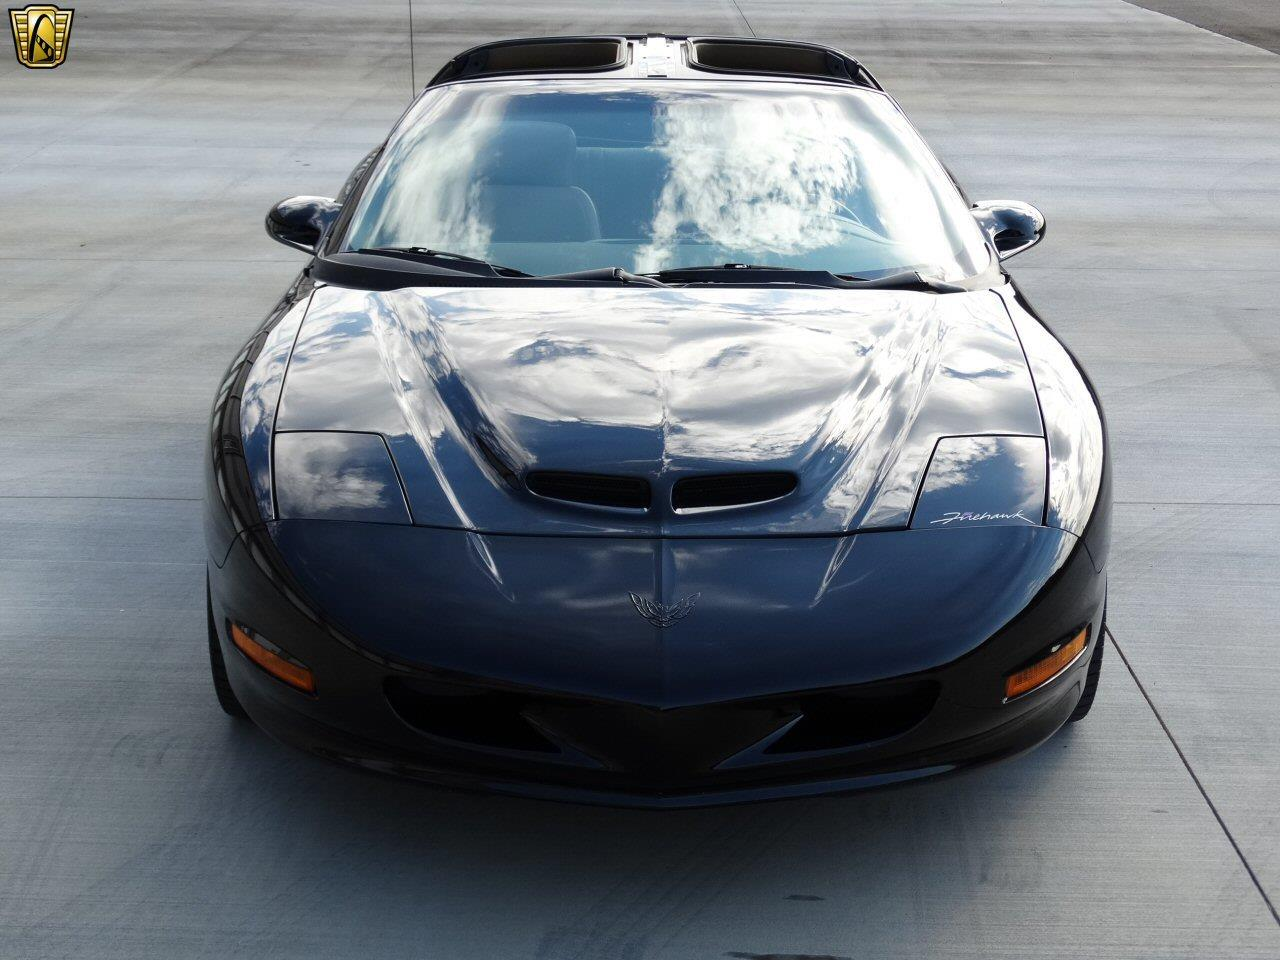 Large Picture of 1994 Pontiac Firebird - $20,995.00 - KF4C